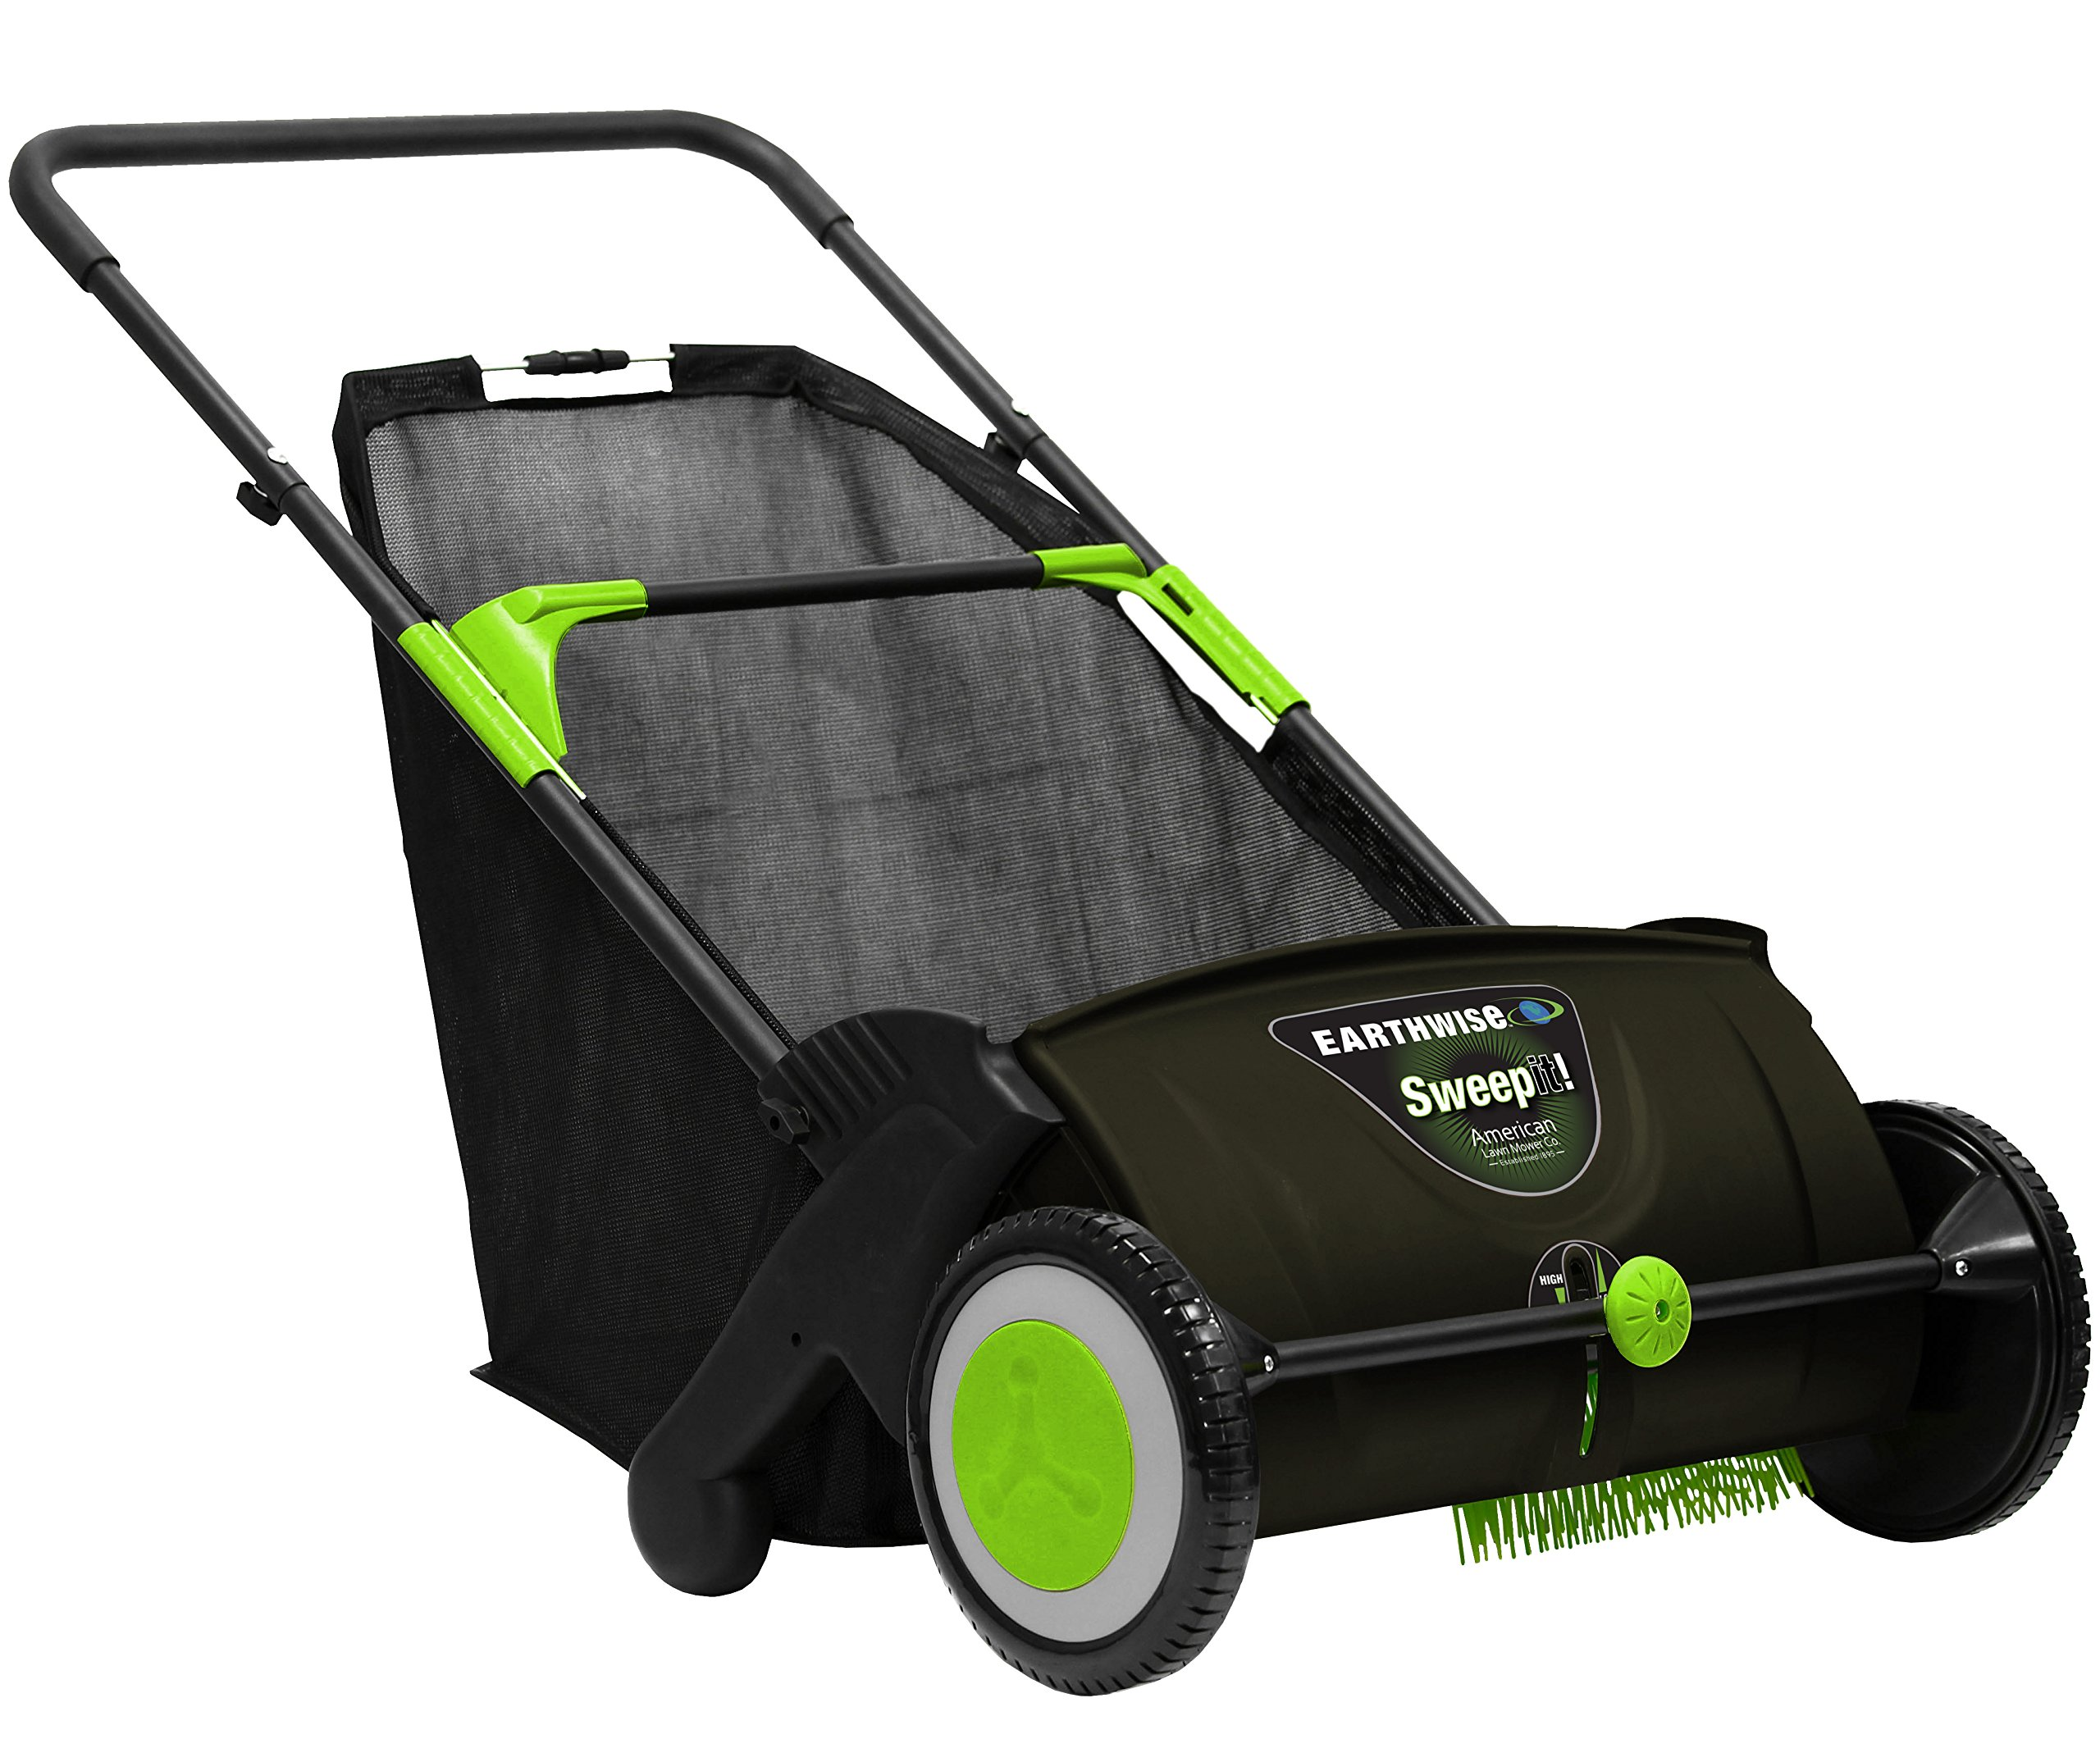 Earthwise LSW70021 21-Inch Leaf & Grass Push Lawn Sweeper, Width, With Rear Collection Bag by Earthwise